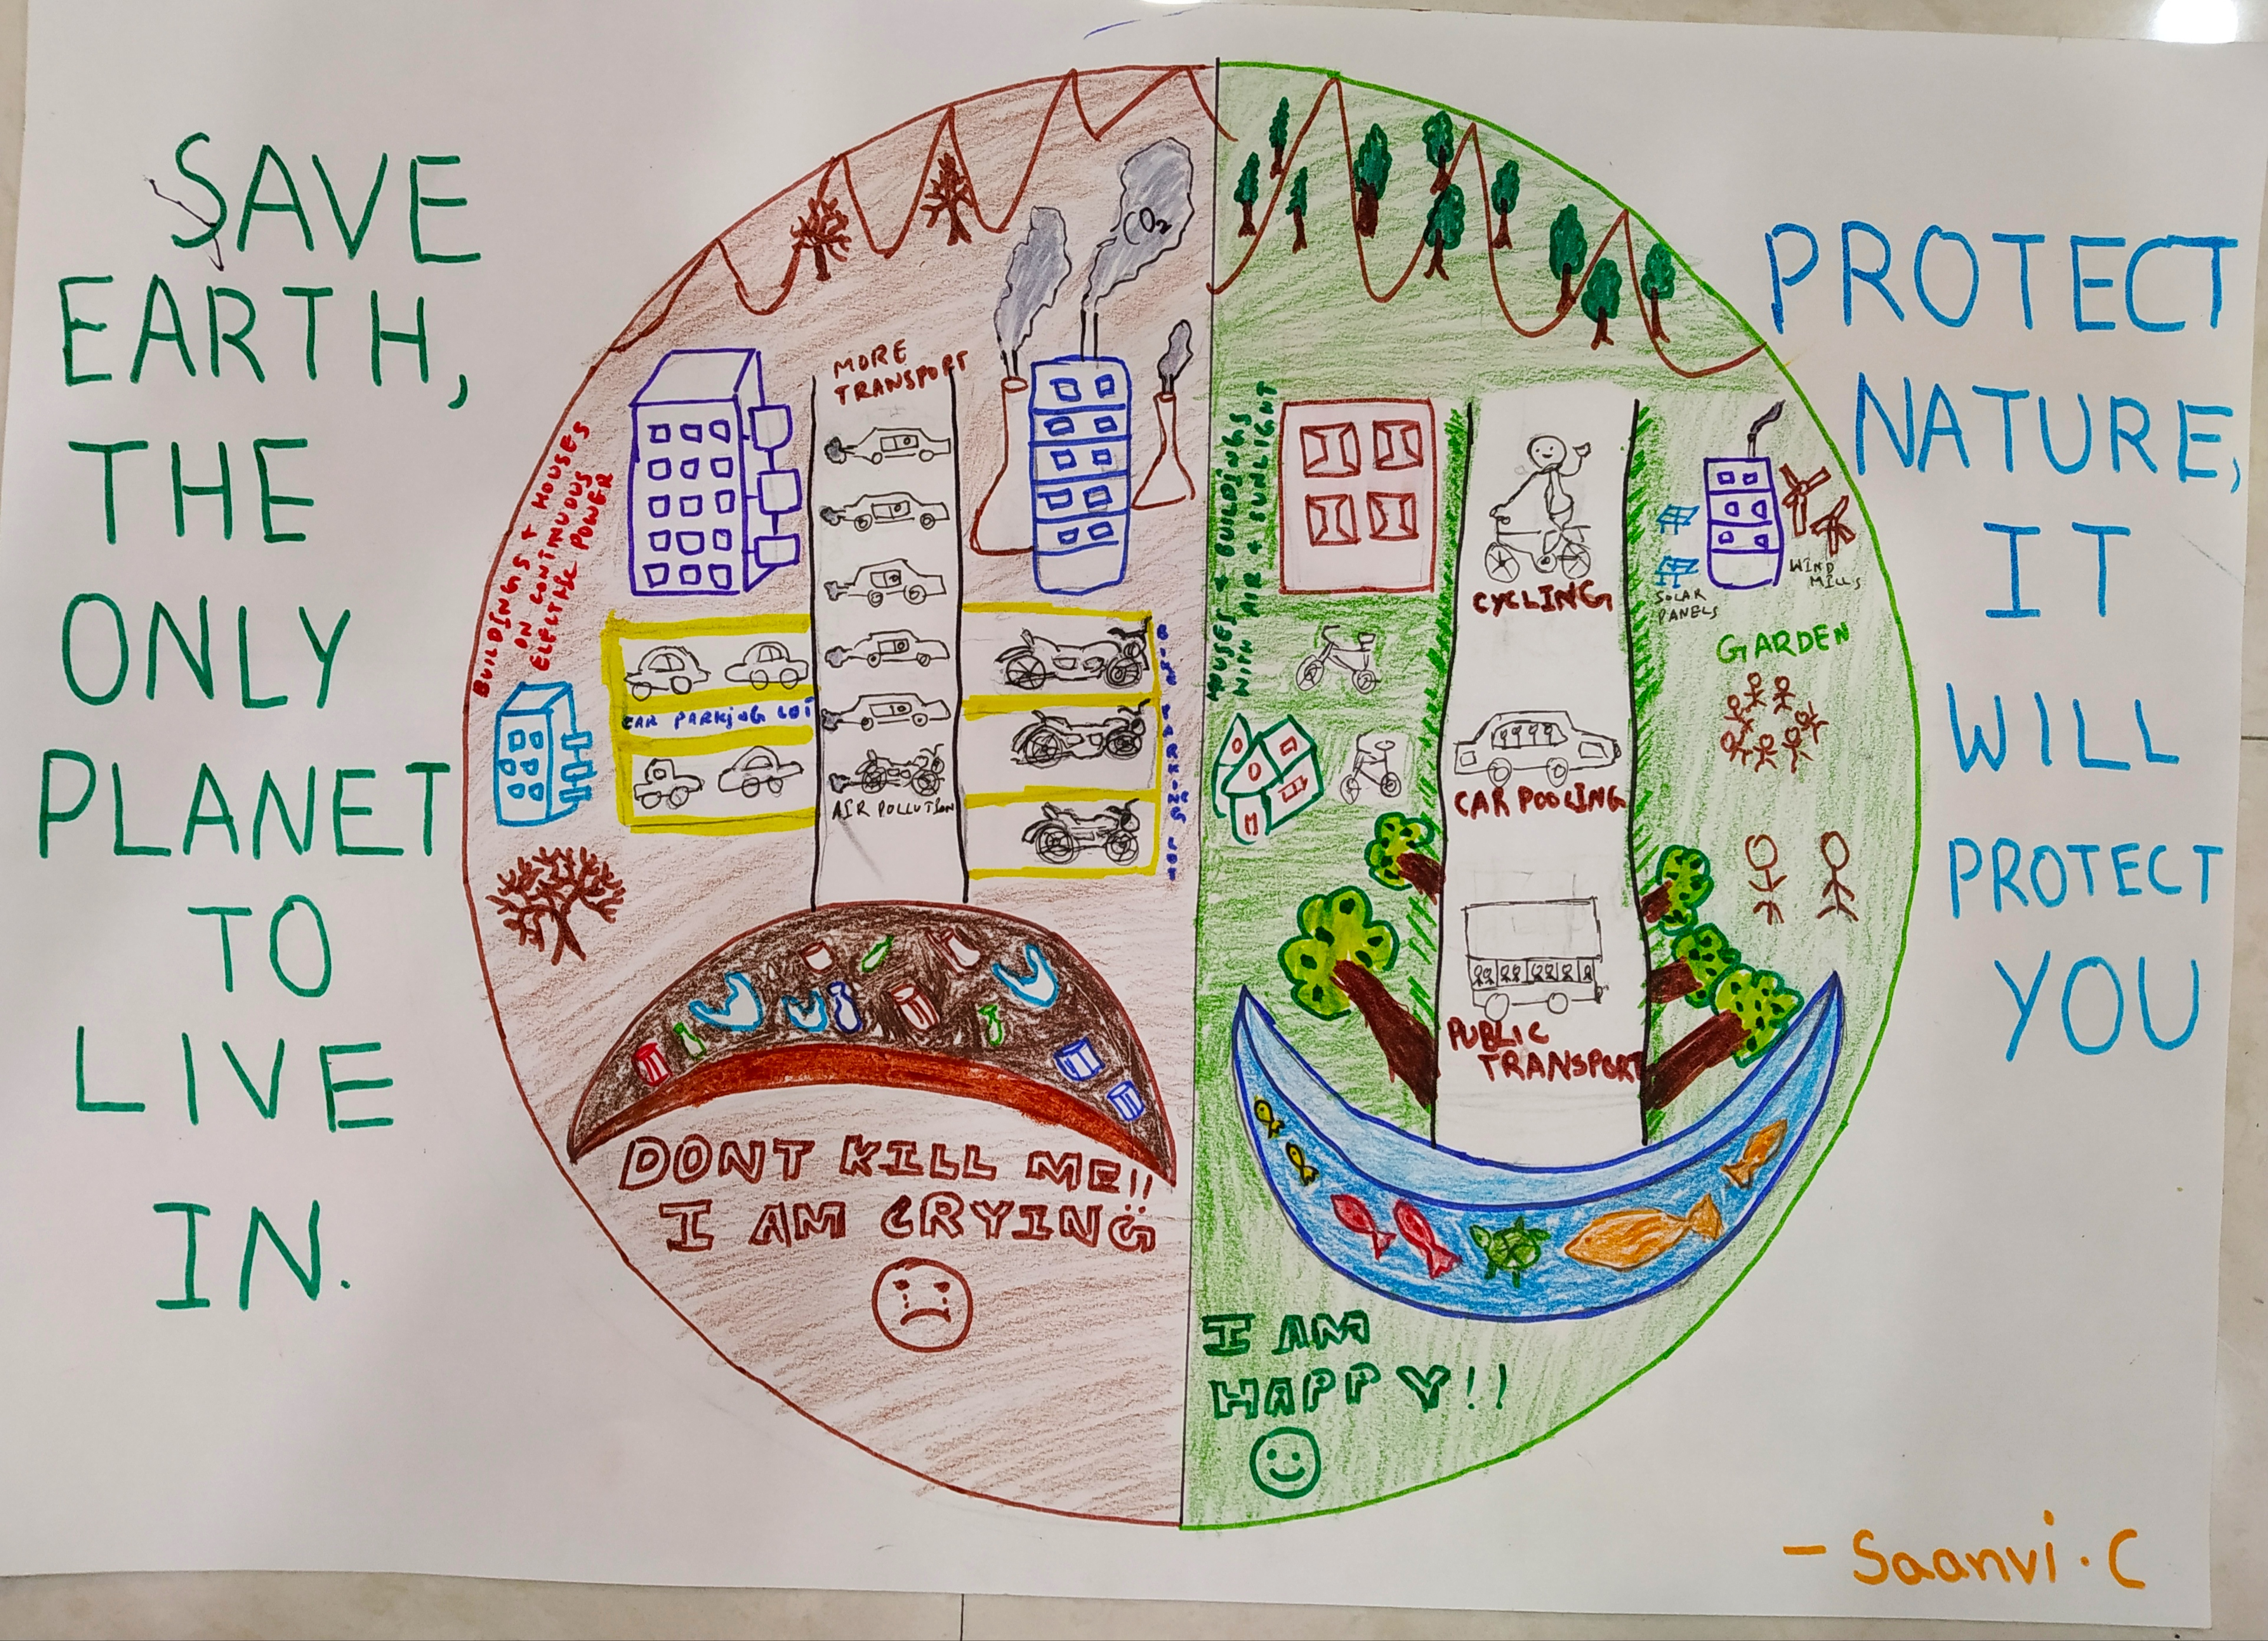 Saanvi's Poster on Global Environment